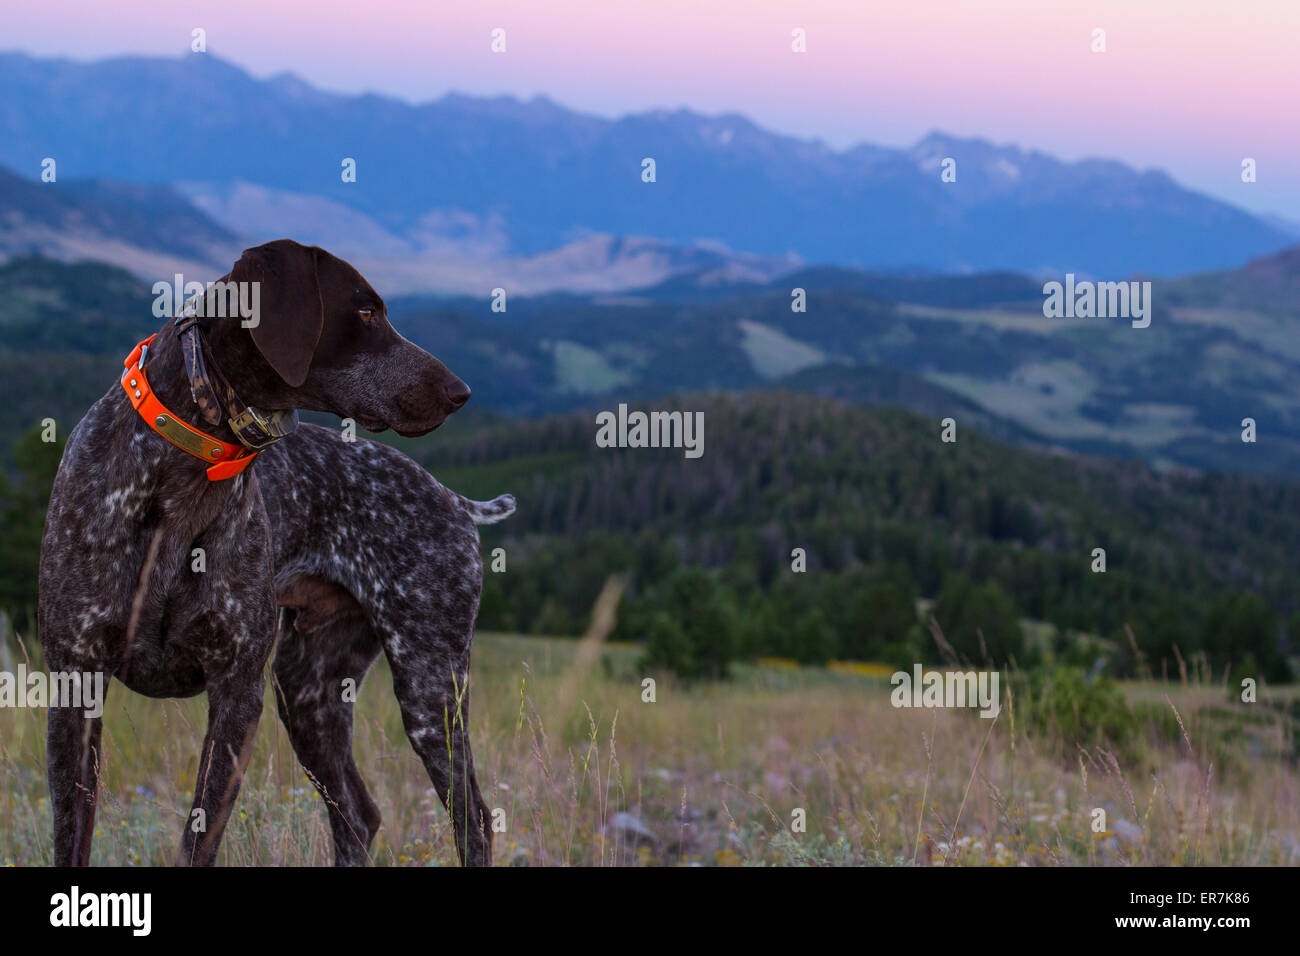 Dog in the Rocky Mountains of Montana - Stock Image